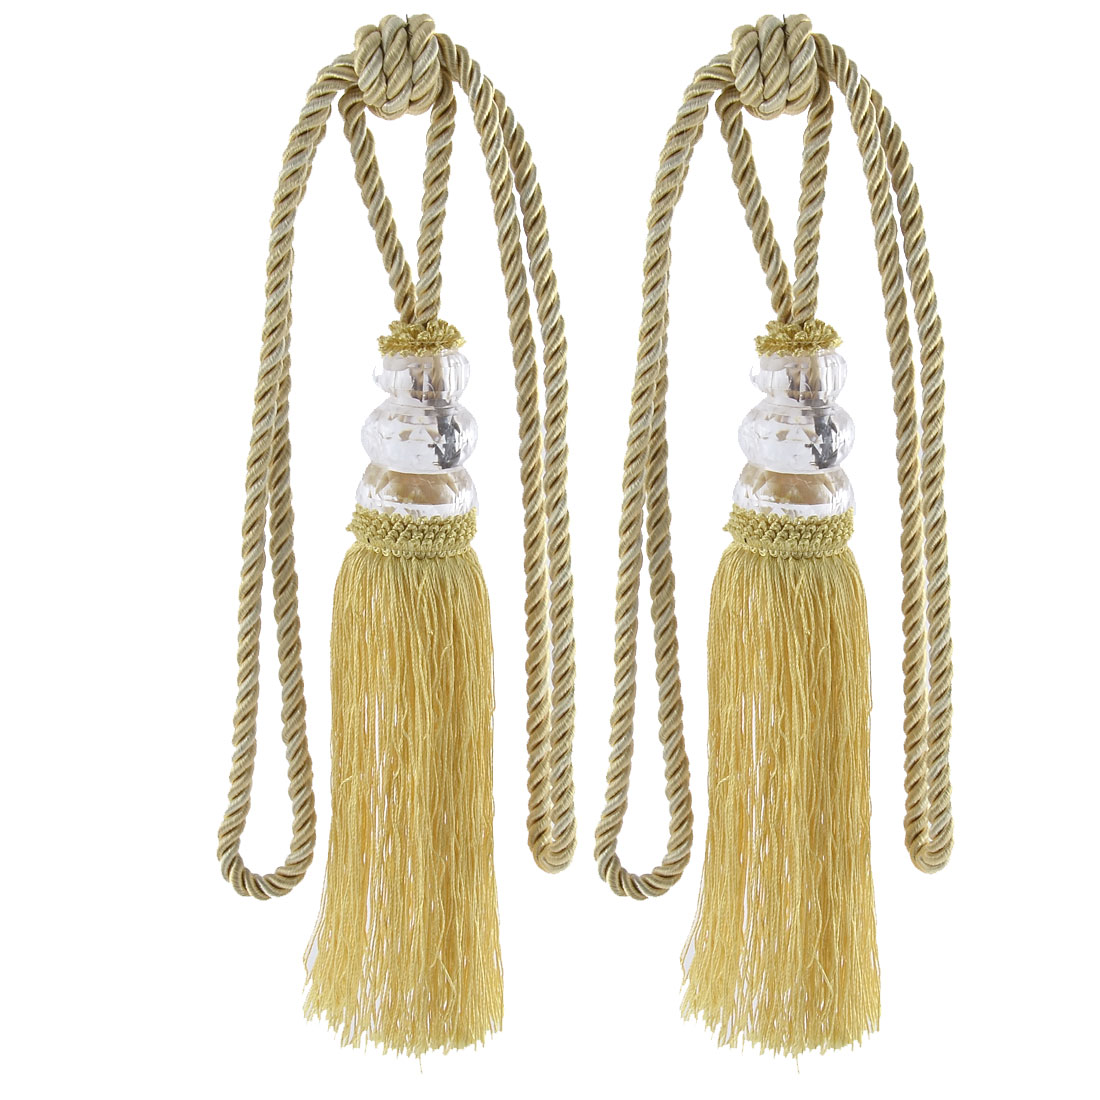 Home Plastic Bead Drapery Curtain Decoration Tassel Fringe Detail Tieback Rope Cord Golden Yellow Pair